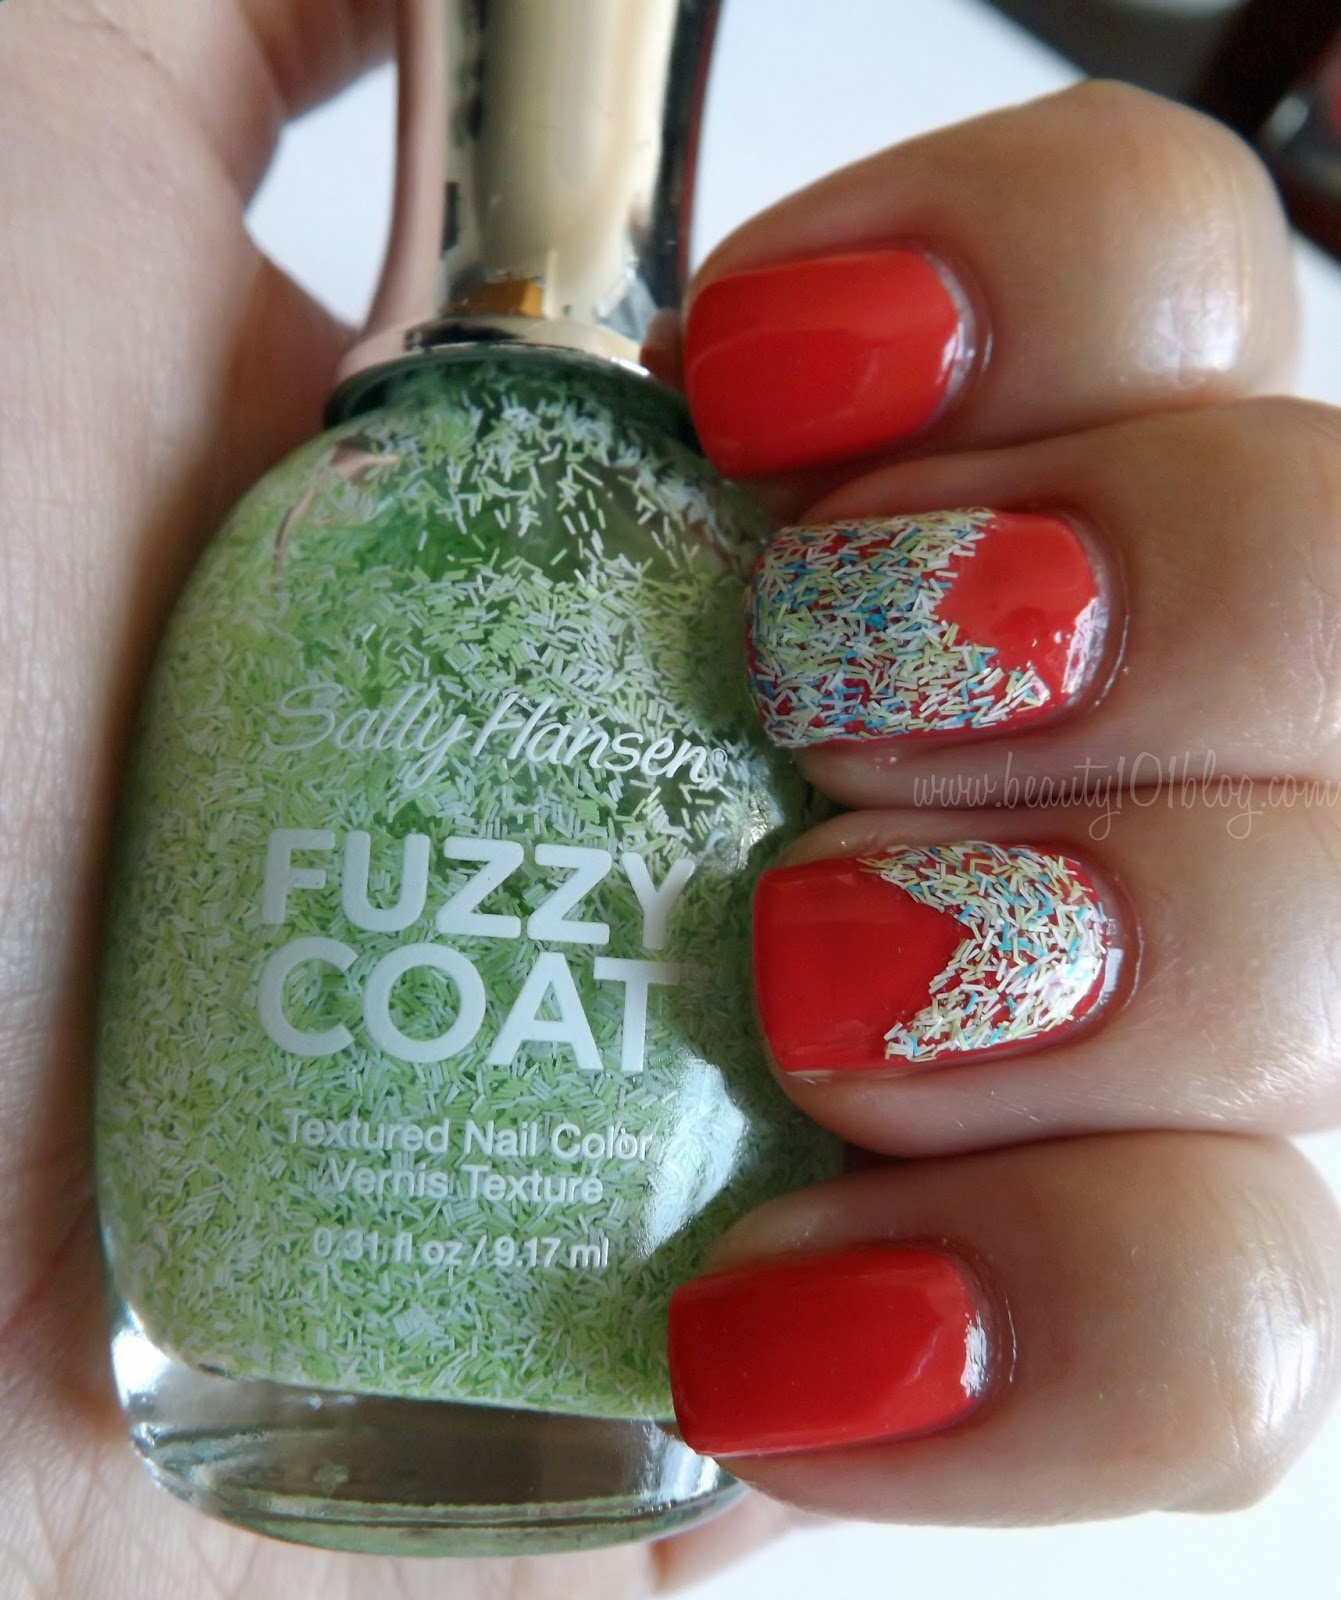 Sally Hansen Fuzzy Coat Color Block Nails Tutorial ...